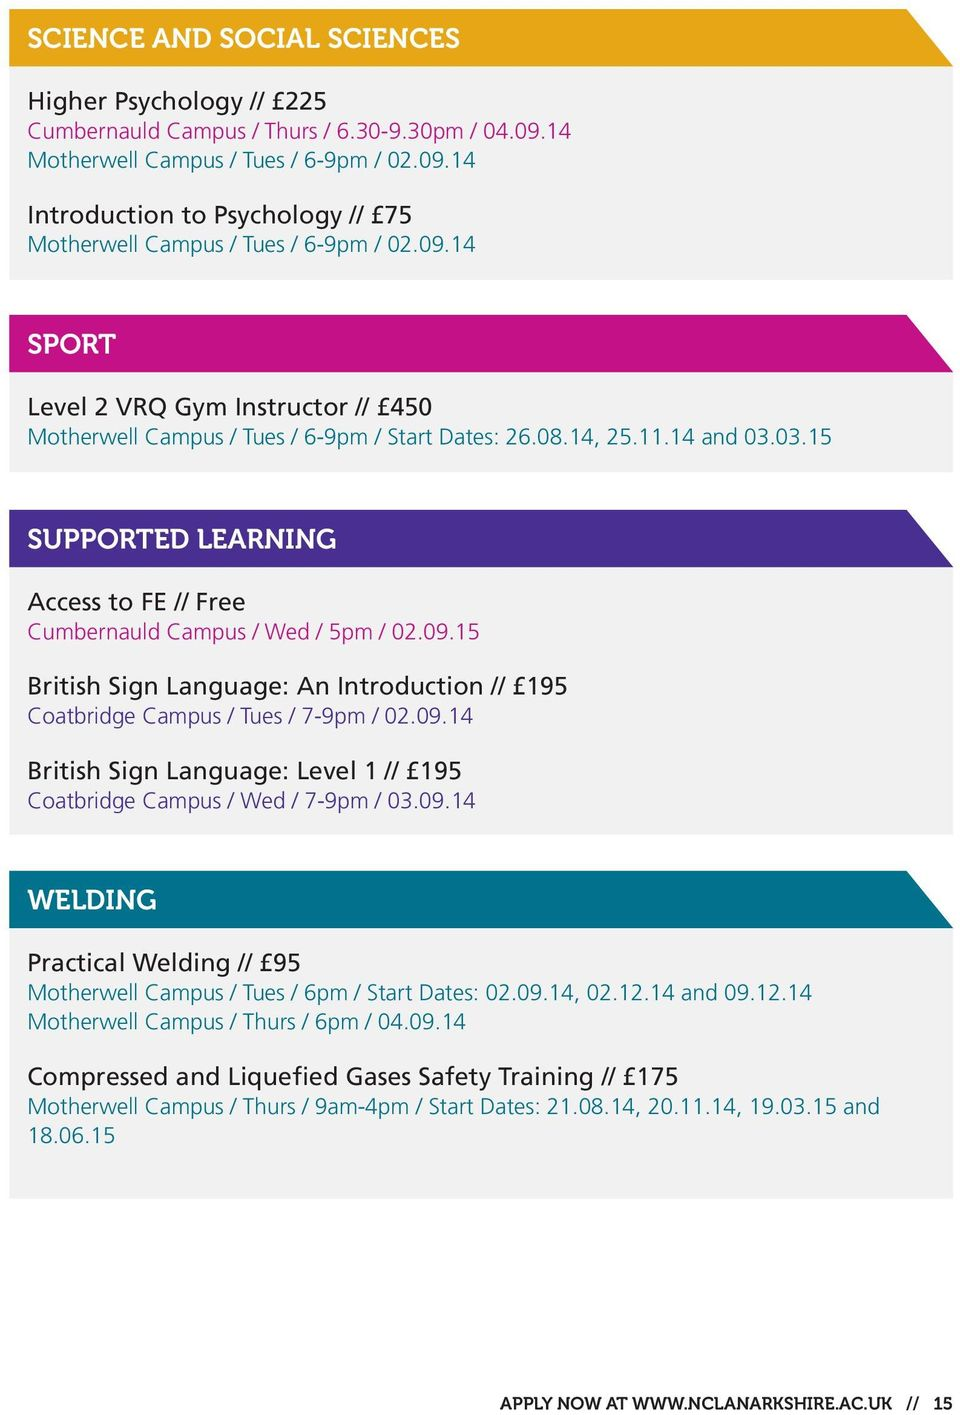 03.15 SUPPORTED LEARNING Access to FE // Free Cumbernauld Campus / Wed / 5pm / 02.09.15 British Sign Language: An Introduction // 195 Coatbridge Campus / Tues / 7-9pm / 02.09.14 British Sign Language: Level 1 // 195 Coatbridge Campus / Wed / 7-9pm / 03.